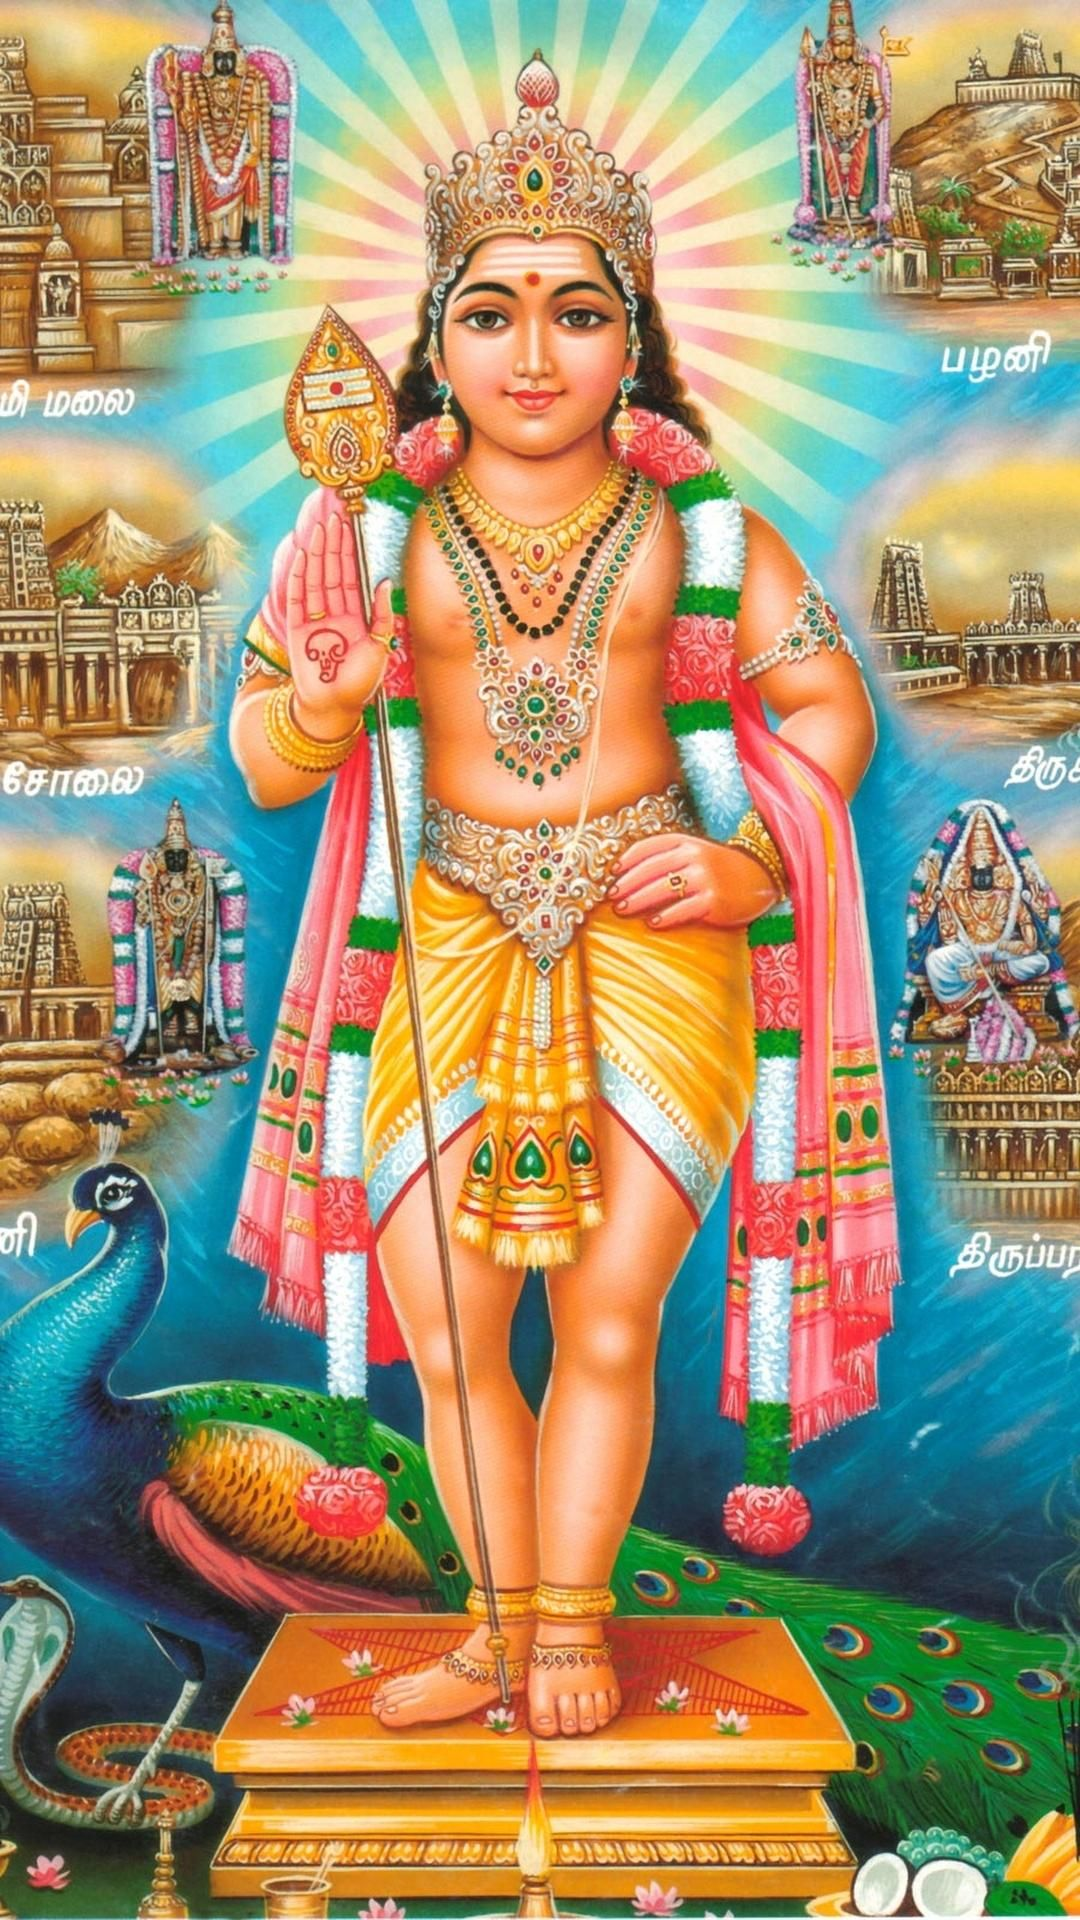 Lord Shiva God Wallpaper in 2020 | Hanuman hd wallpaper, Lord krishna hd  wallpaper, Hd wallpapers for mobile